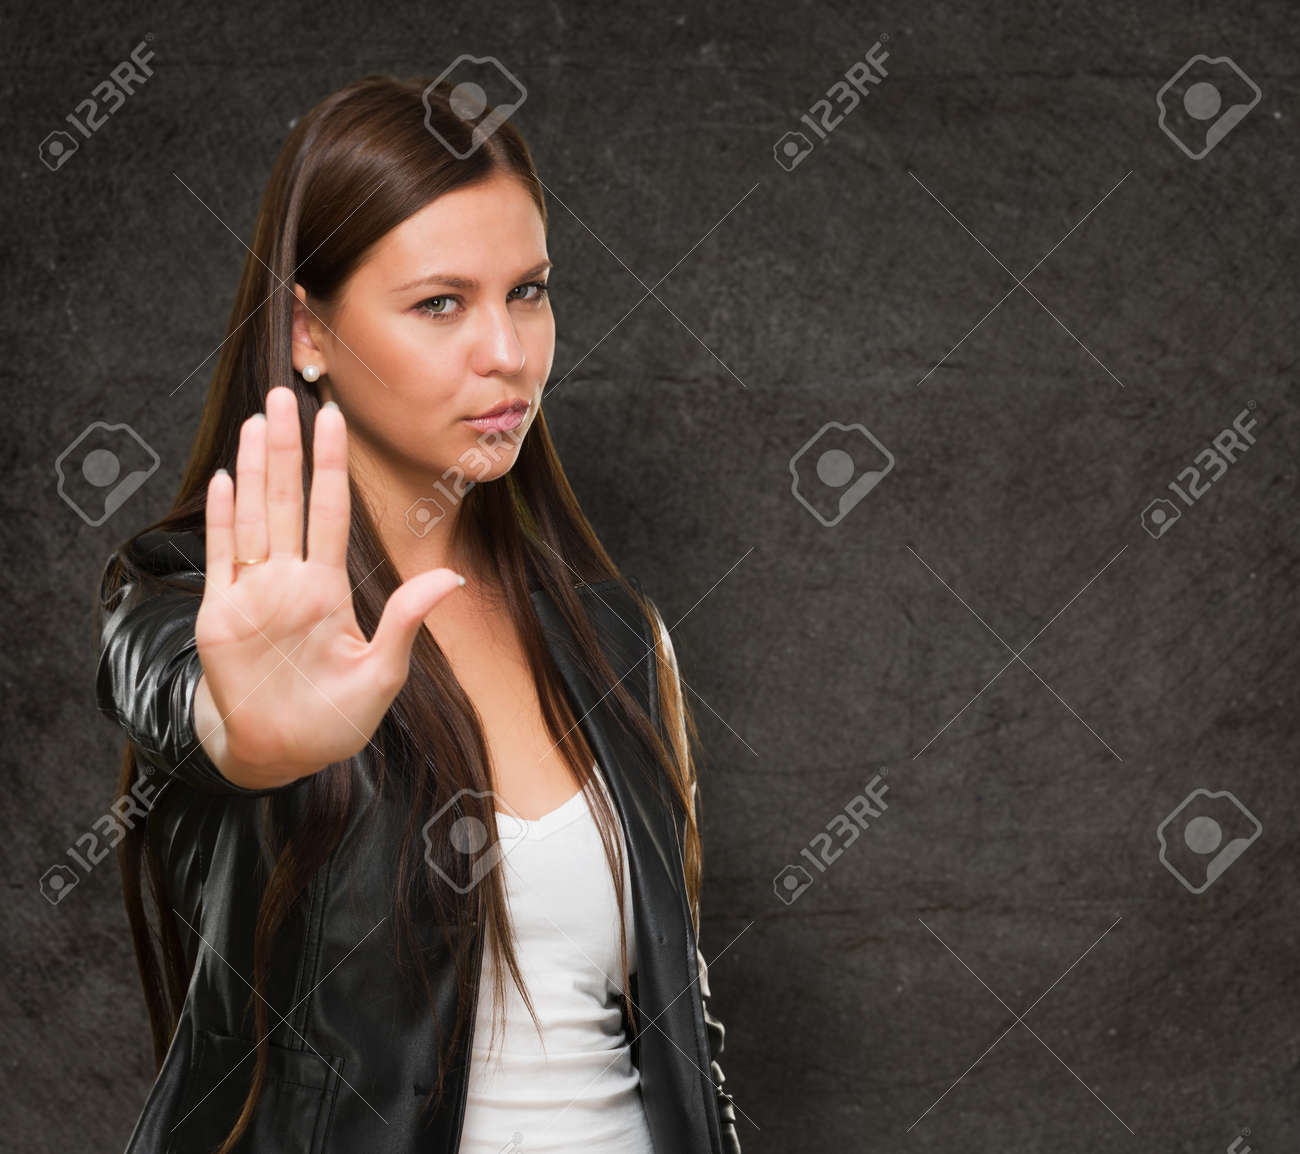 Young Woman Showing Stop Hand Gesture against a grunge background Stock Photo - 16672409